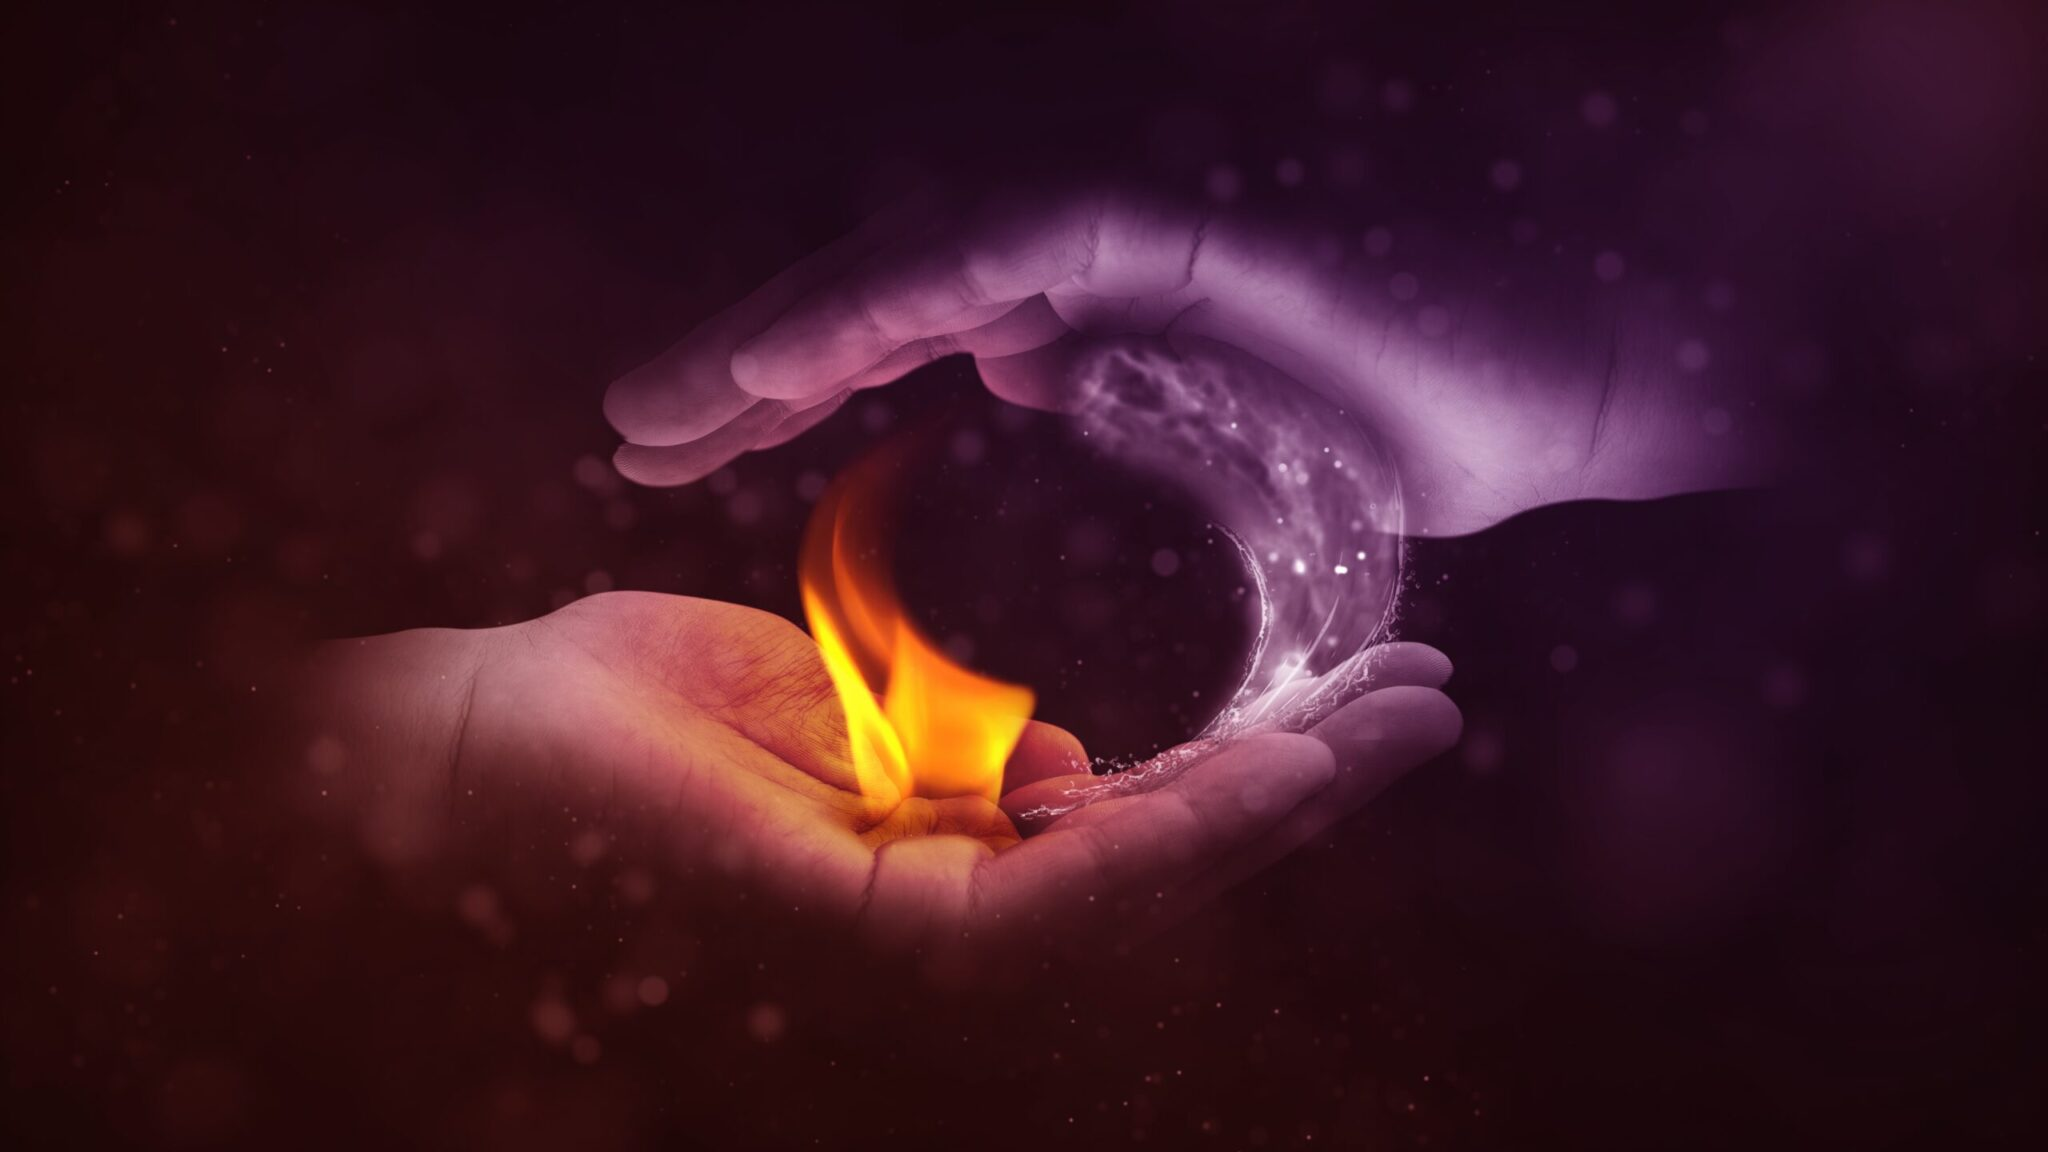 human hands cupped around a fire flame sitting in the palm of the hand next to a column of ice referencing attitude polarization